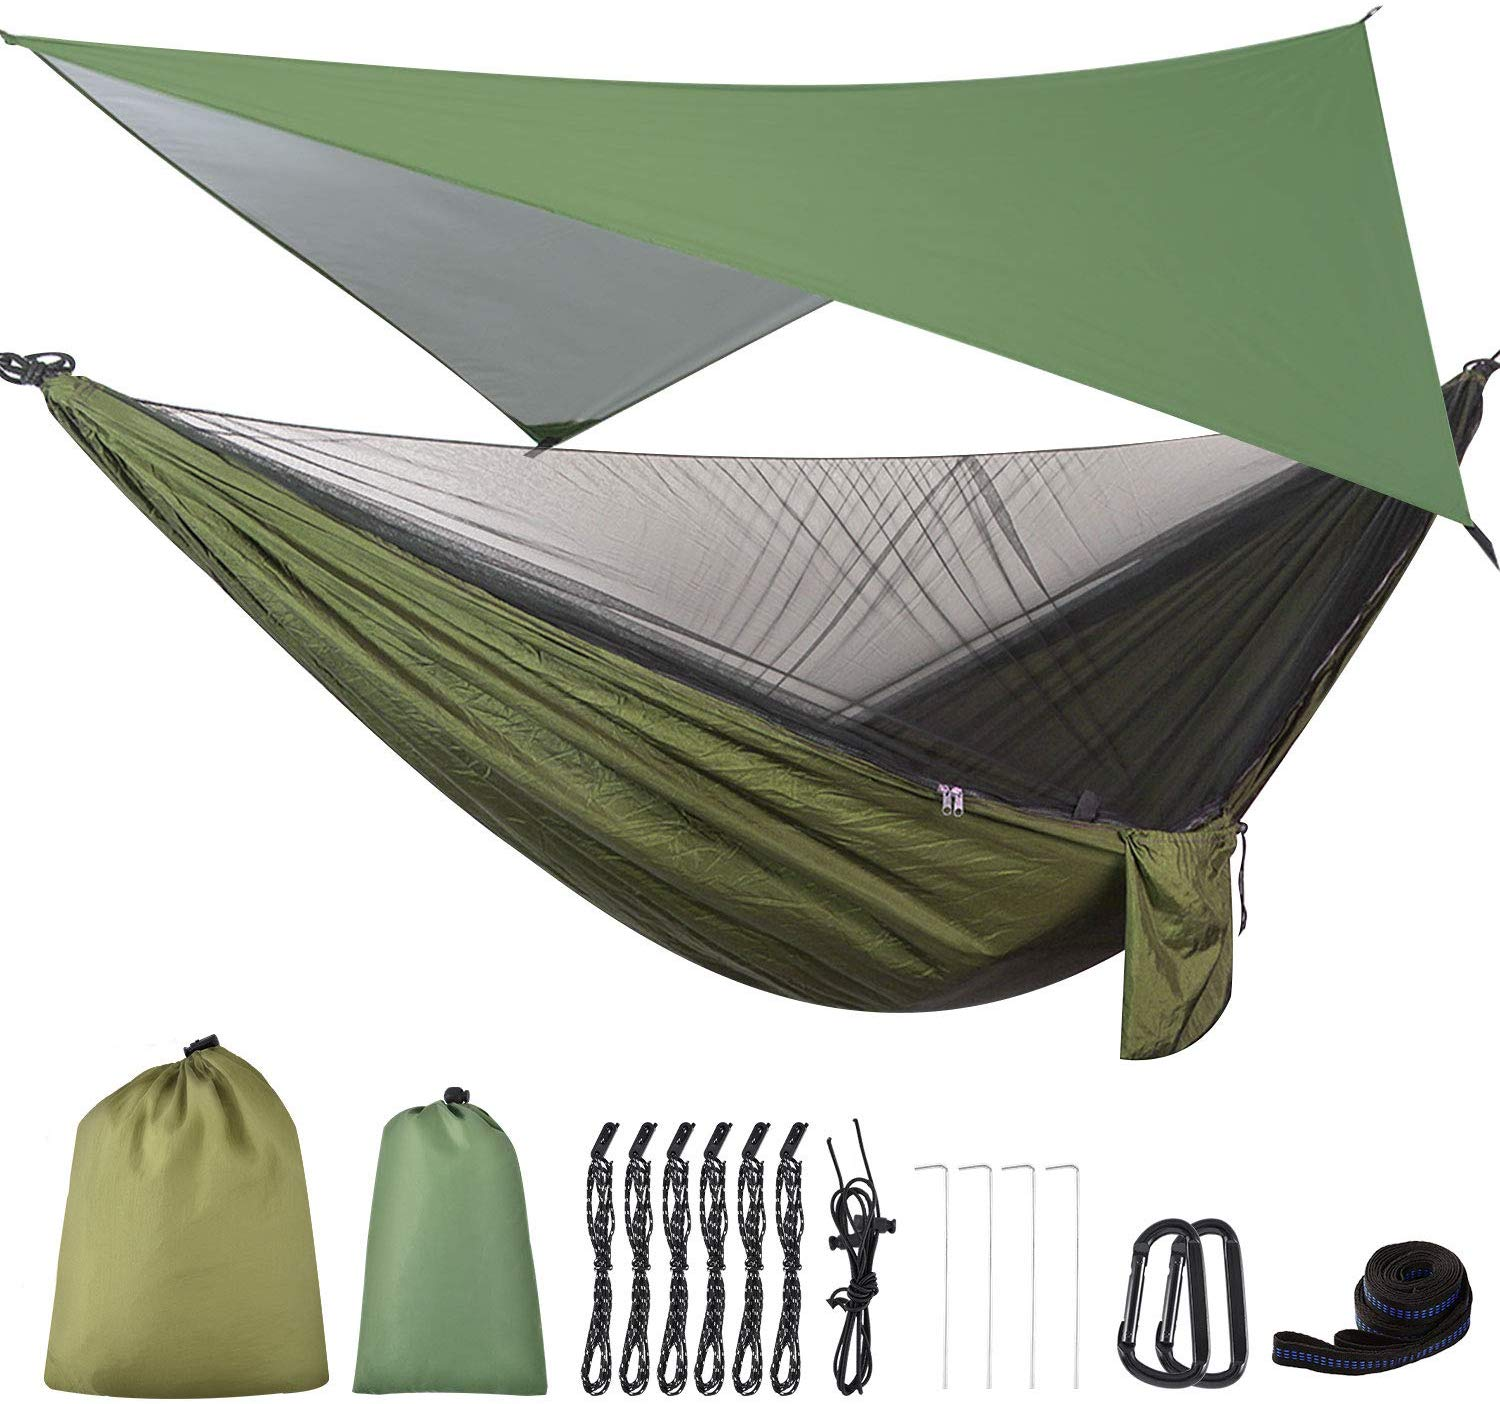 FIRINER Camping Hammock with Mosquito Net